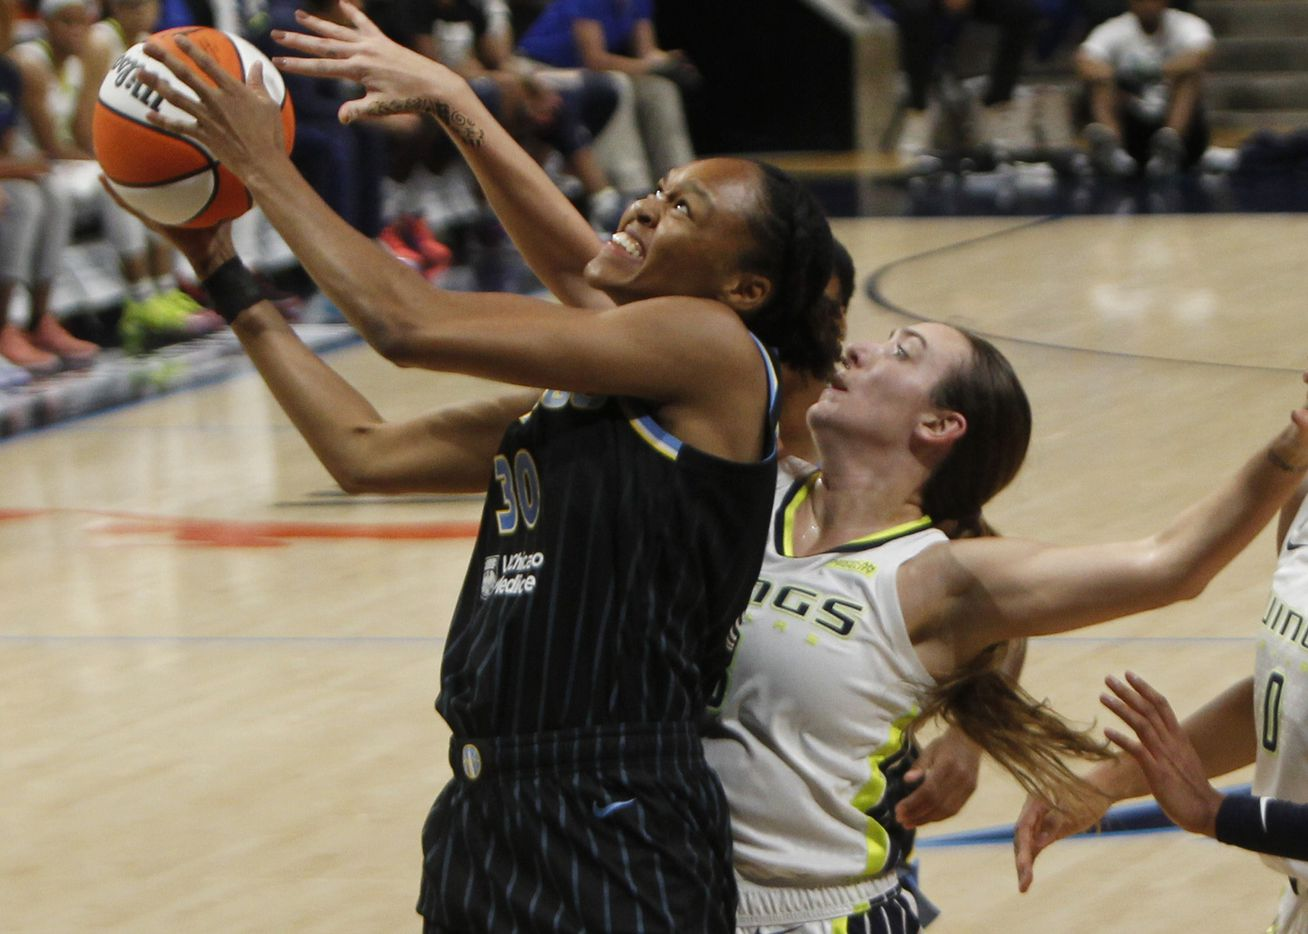 Chicago Sky forward Azura Stevens (30) drives and shoots as Dallas Wings guard Marina Mabrey (3) defends during second half action. Dallas defeated Chicago 100-91. The two WNBA teams played their game at College Park Center in Arlington on July 2, 2021. (Steve Hamm/ Special Contributor)